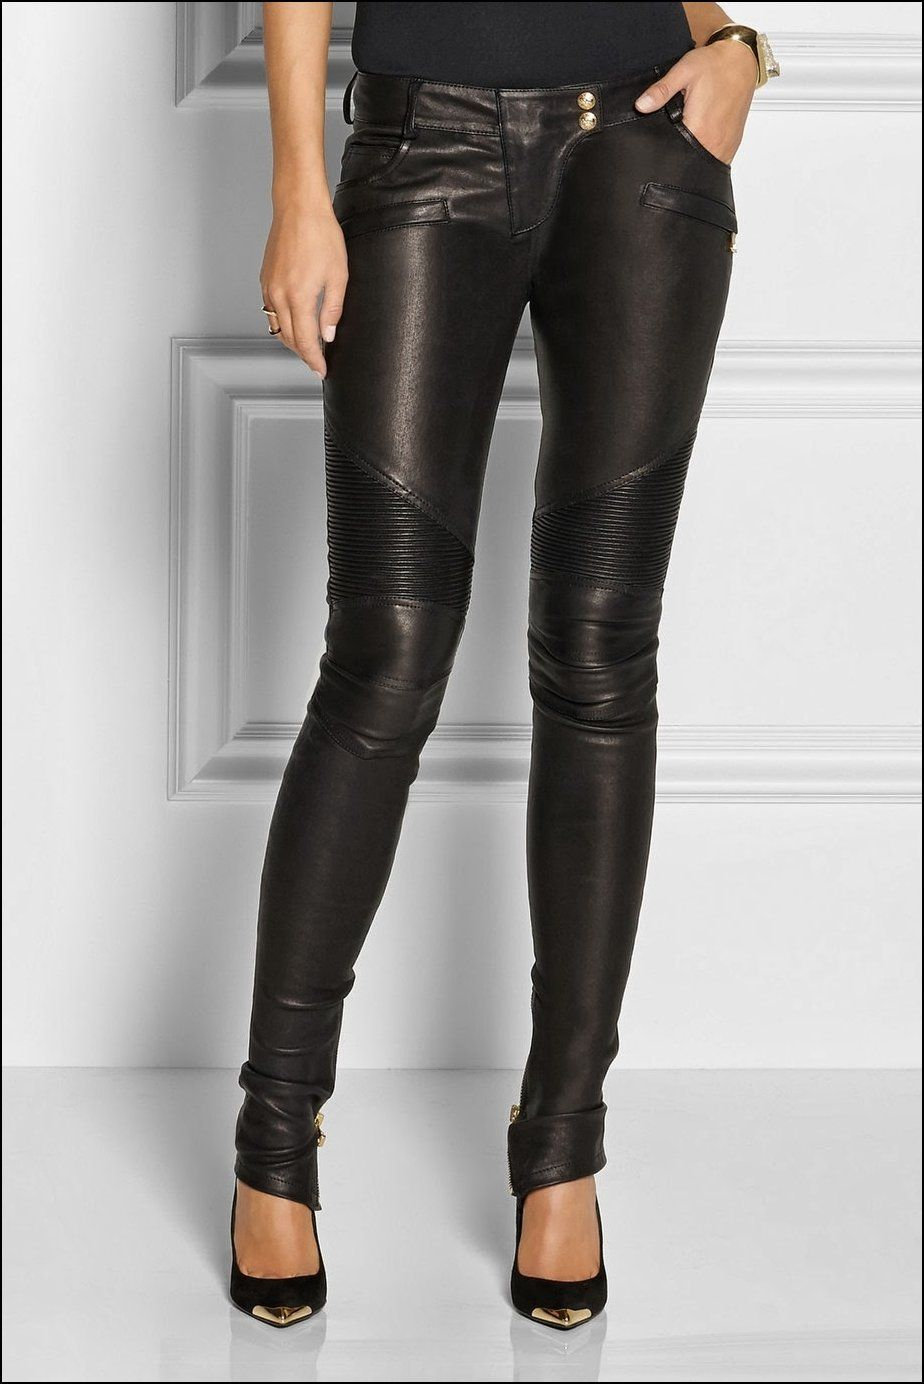 Amazing Black Leather Pants For Women Womensleatherpantsfashion